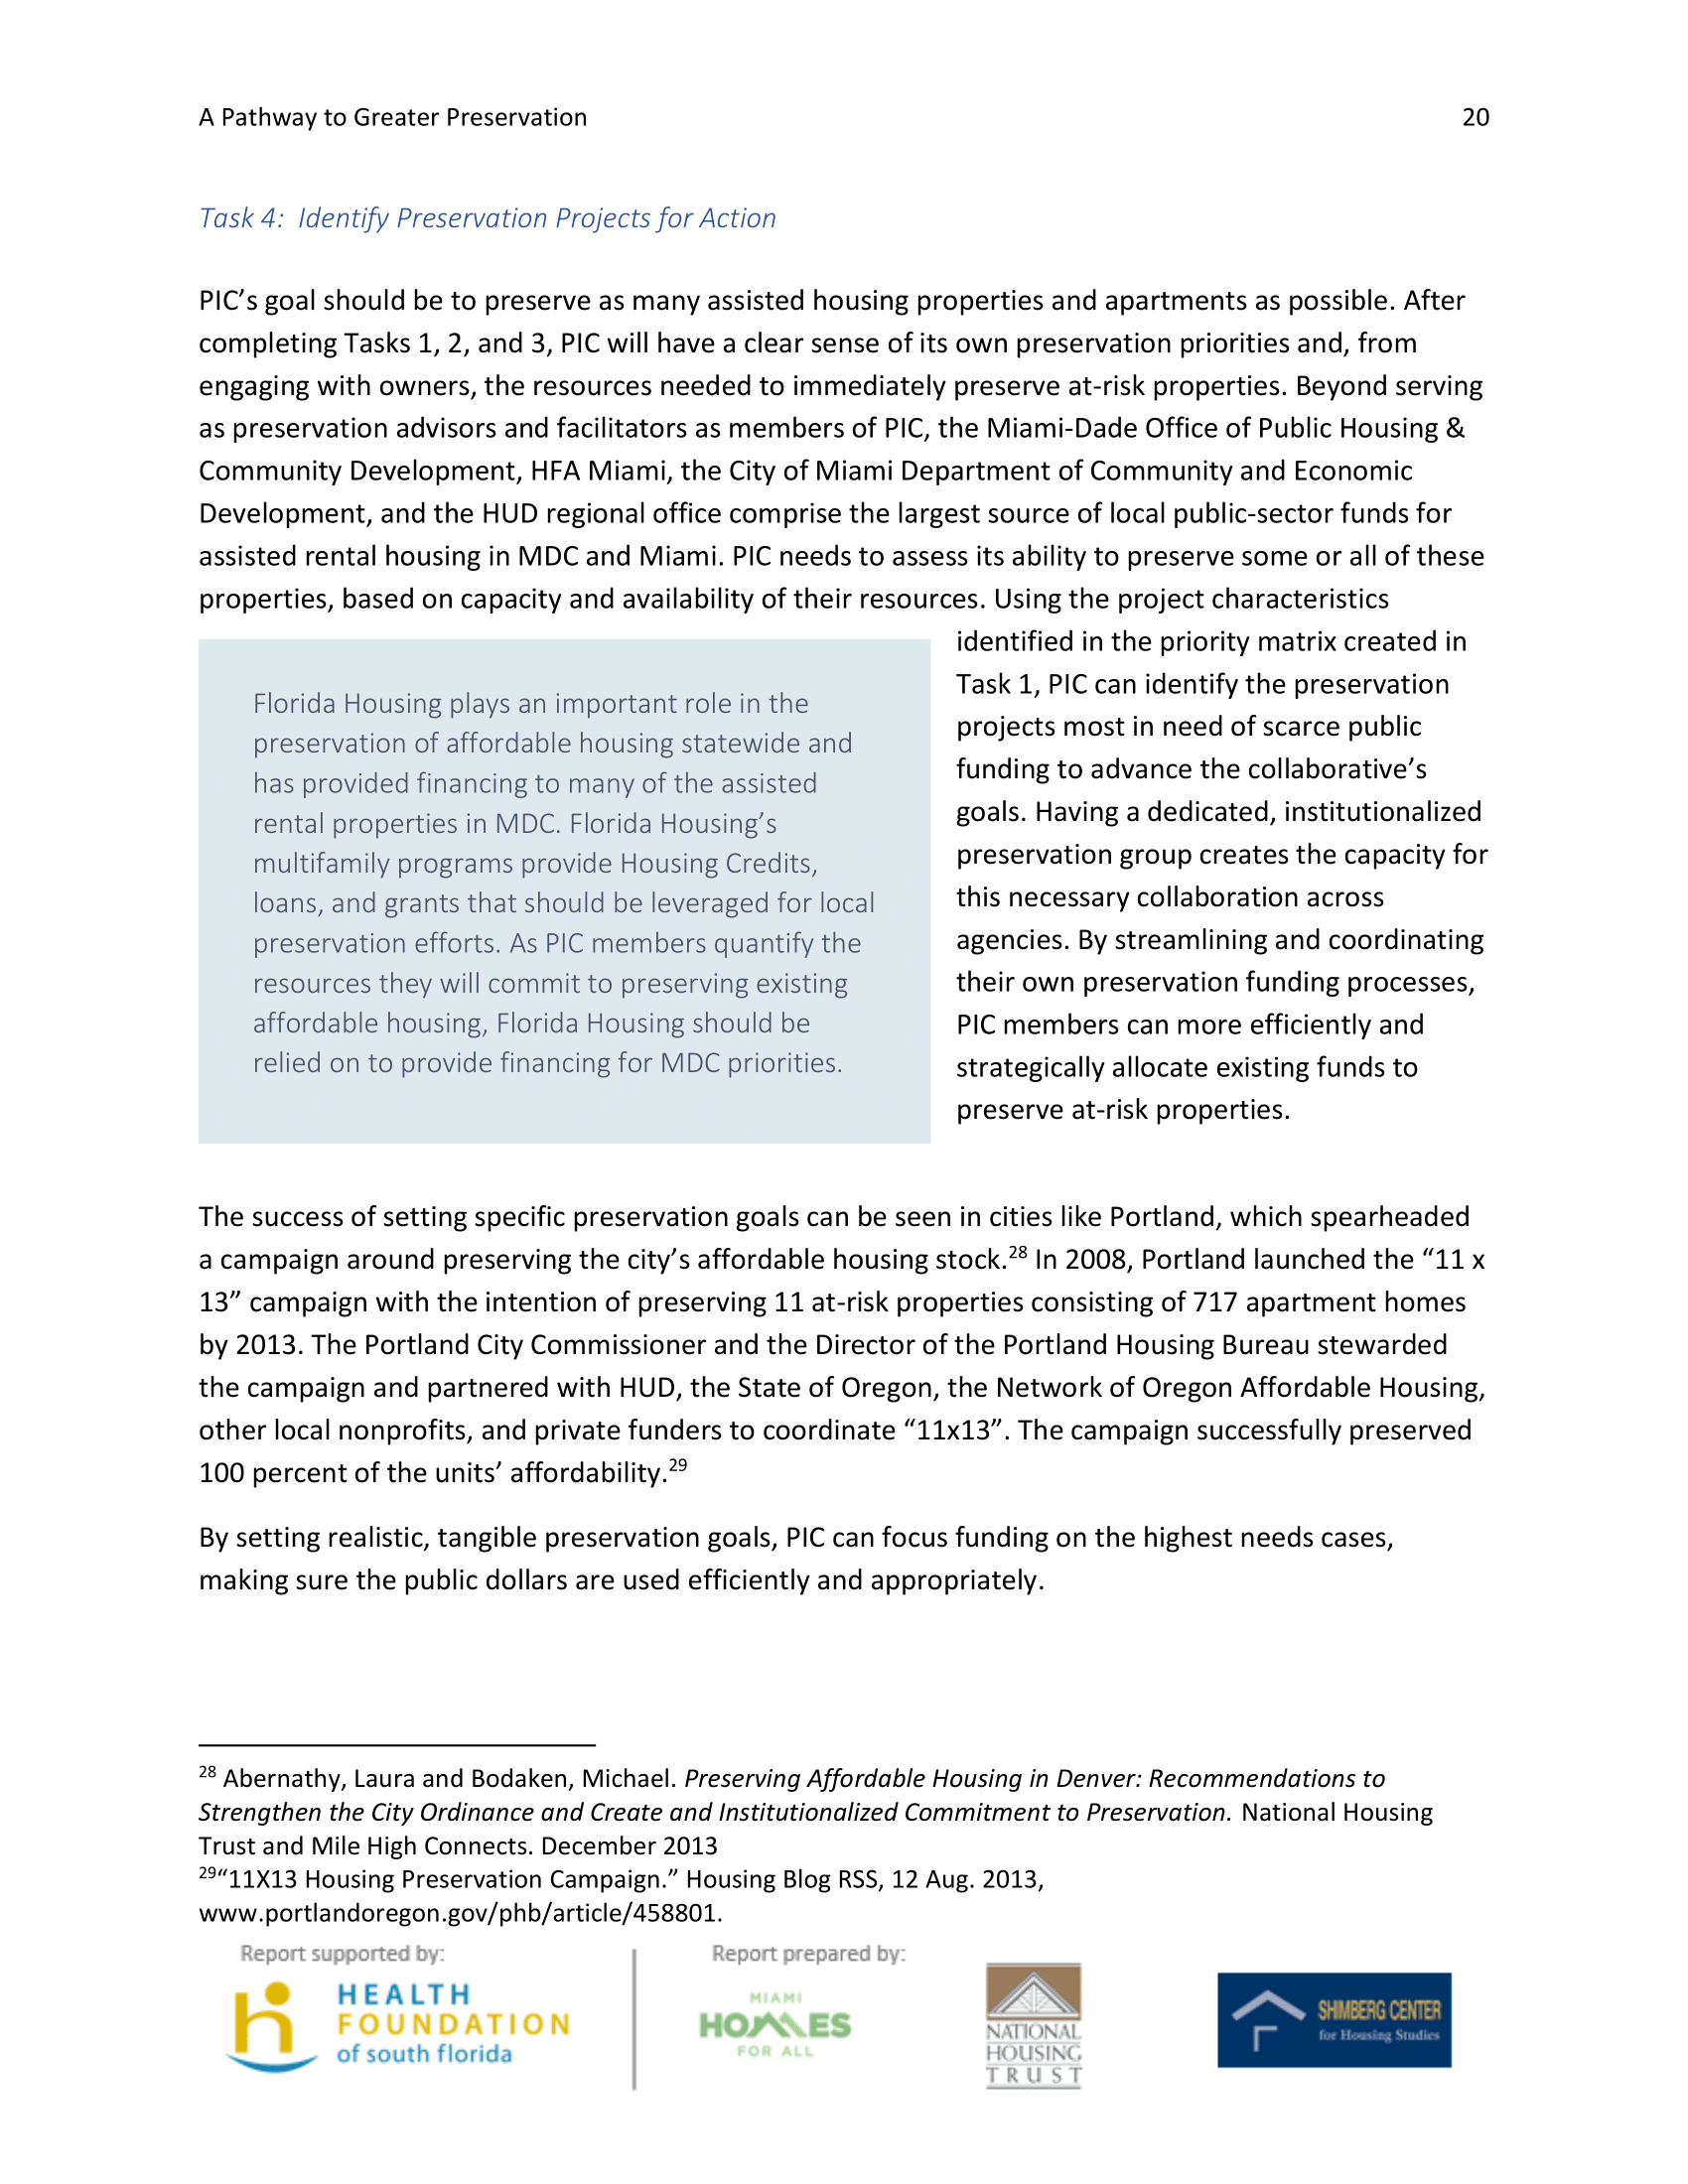 A Pathway to Greater Preservation - February 2018-28.png